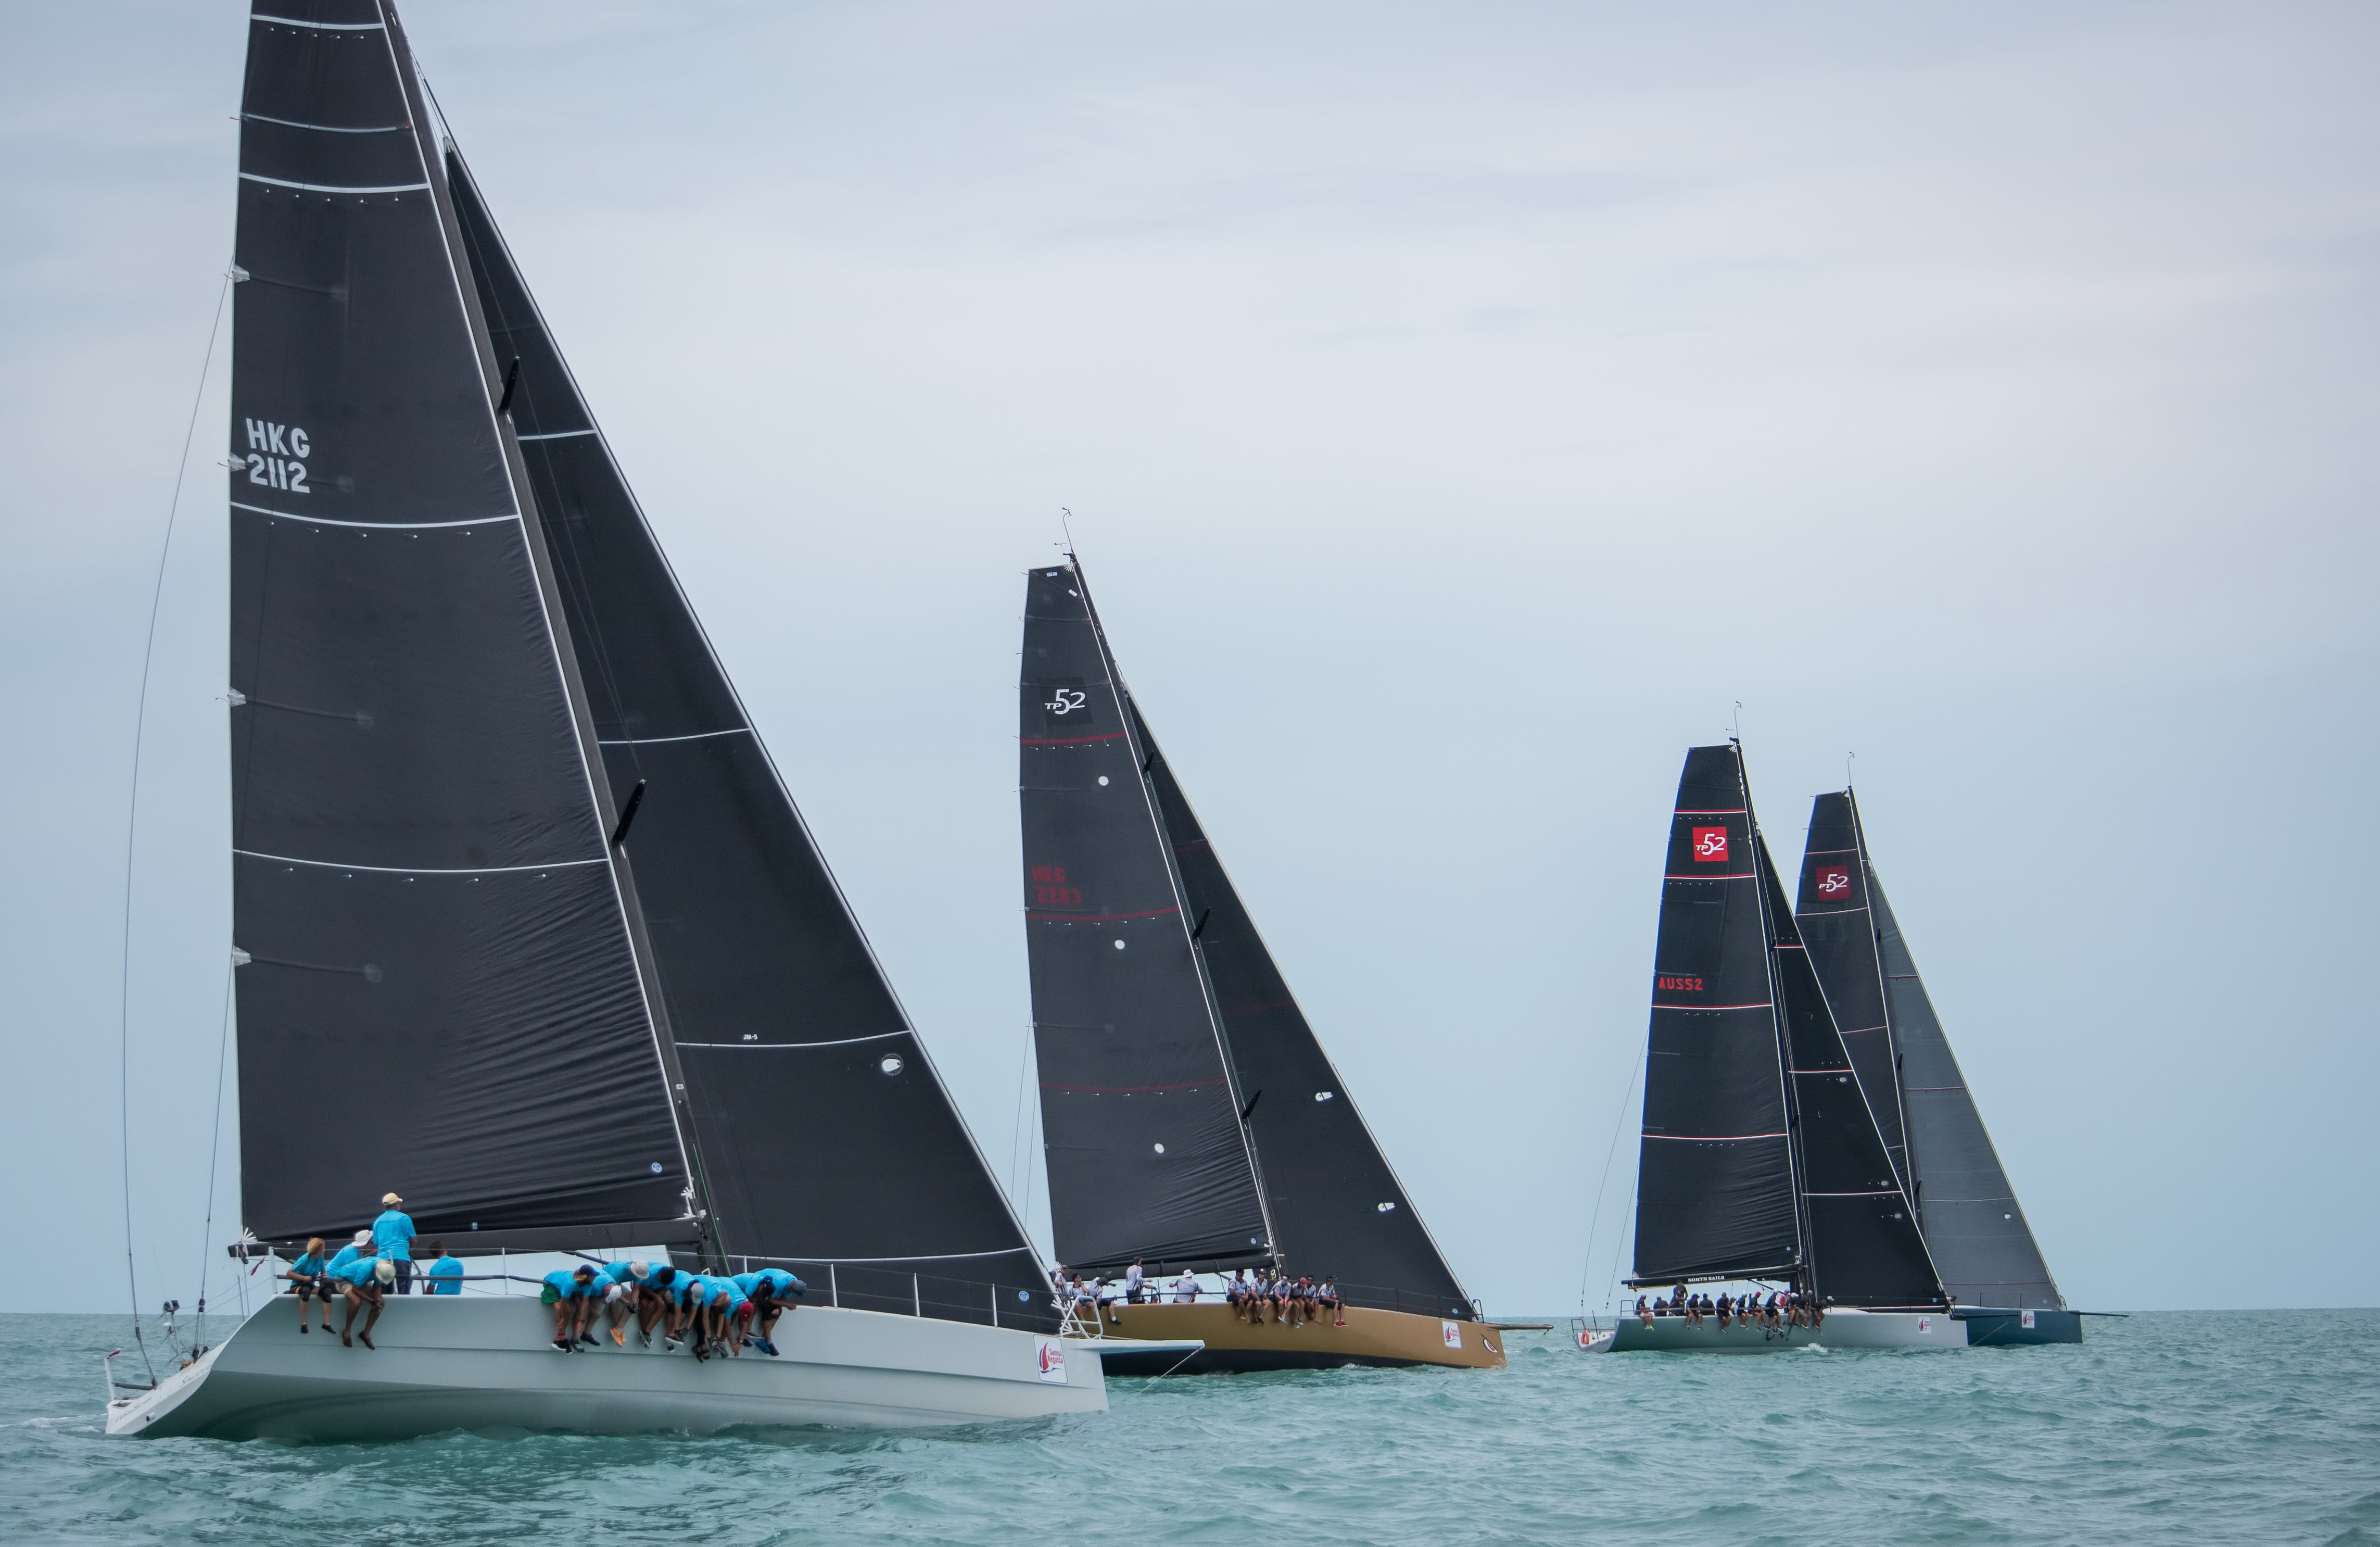 Coastal course shakes up the standings on Day 3 of 2016 Samui Regatta | Samui Times